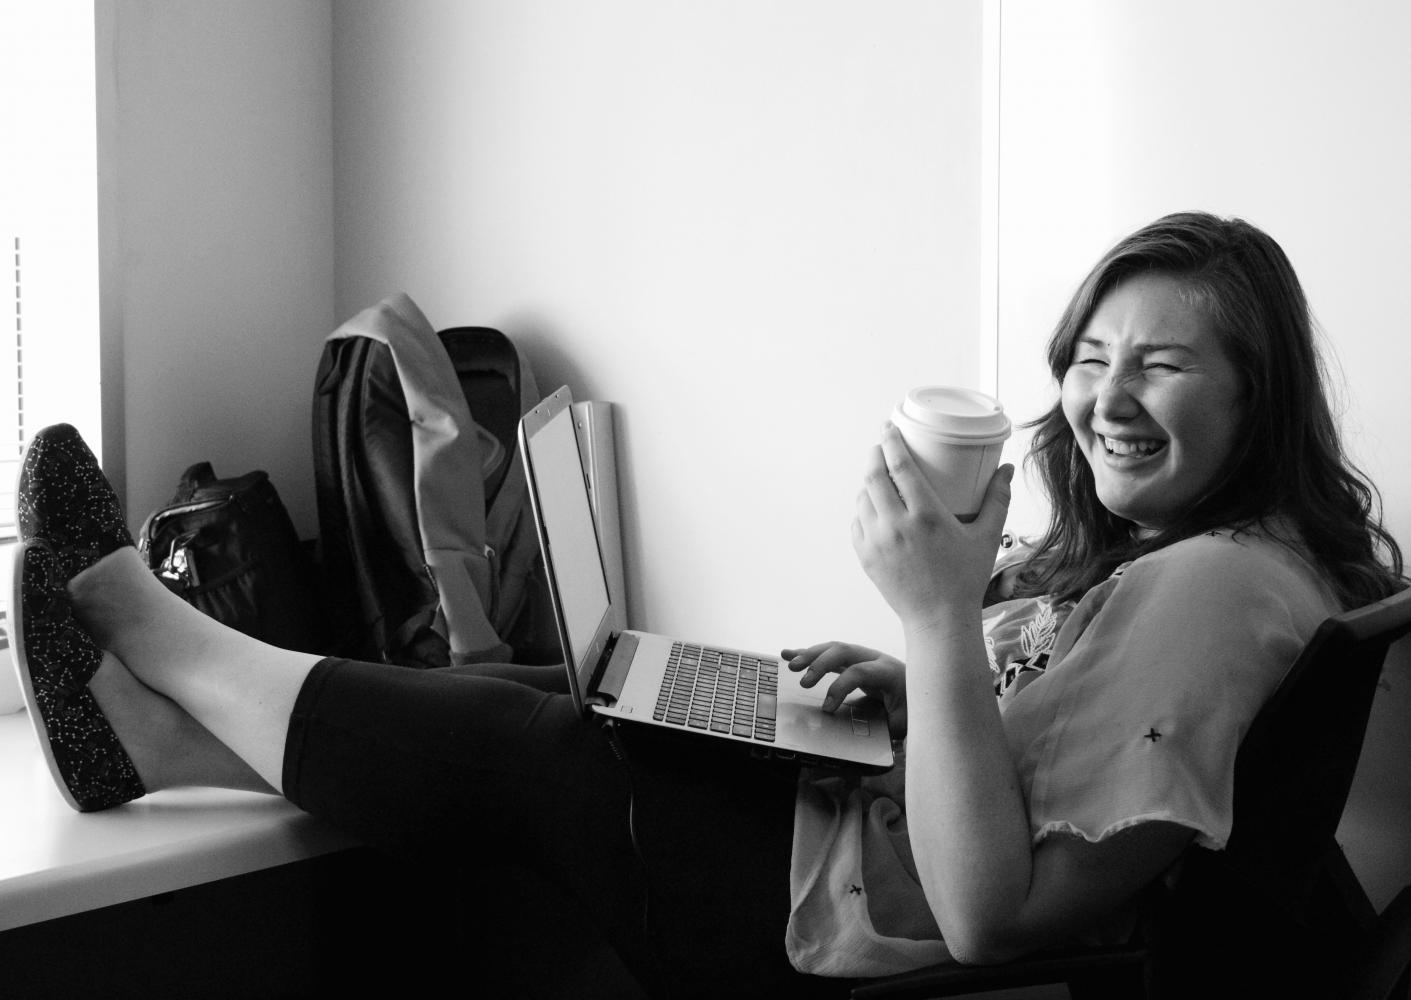 Meghan enjoying her coffee in the Cougar Chronicle office where she feels right at home.